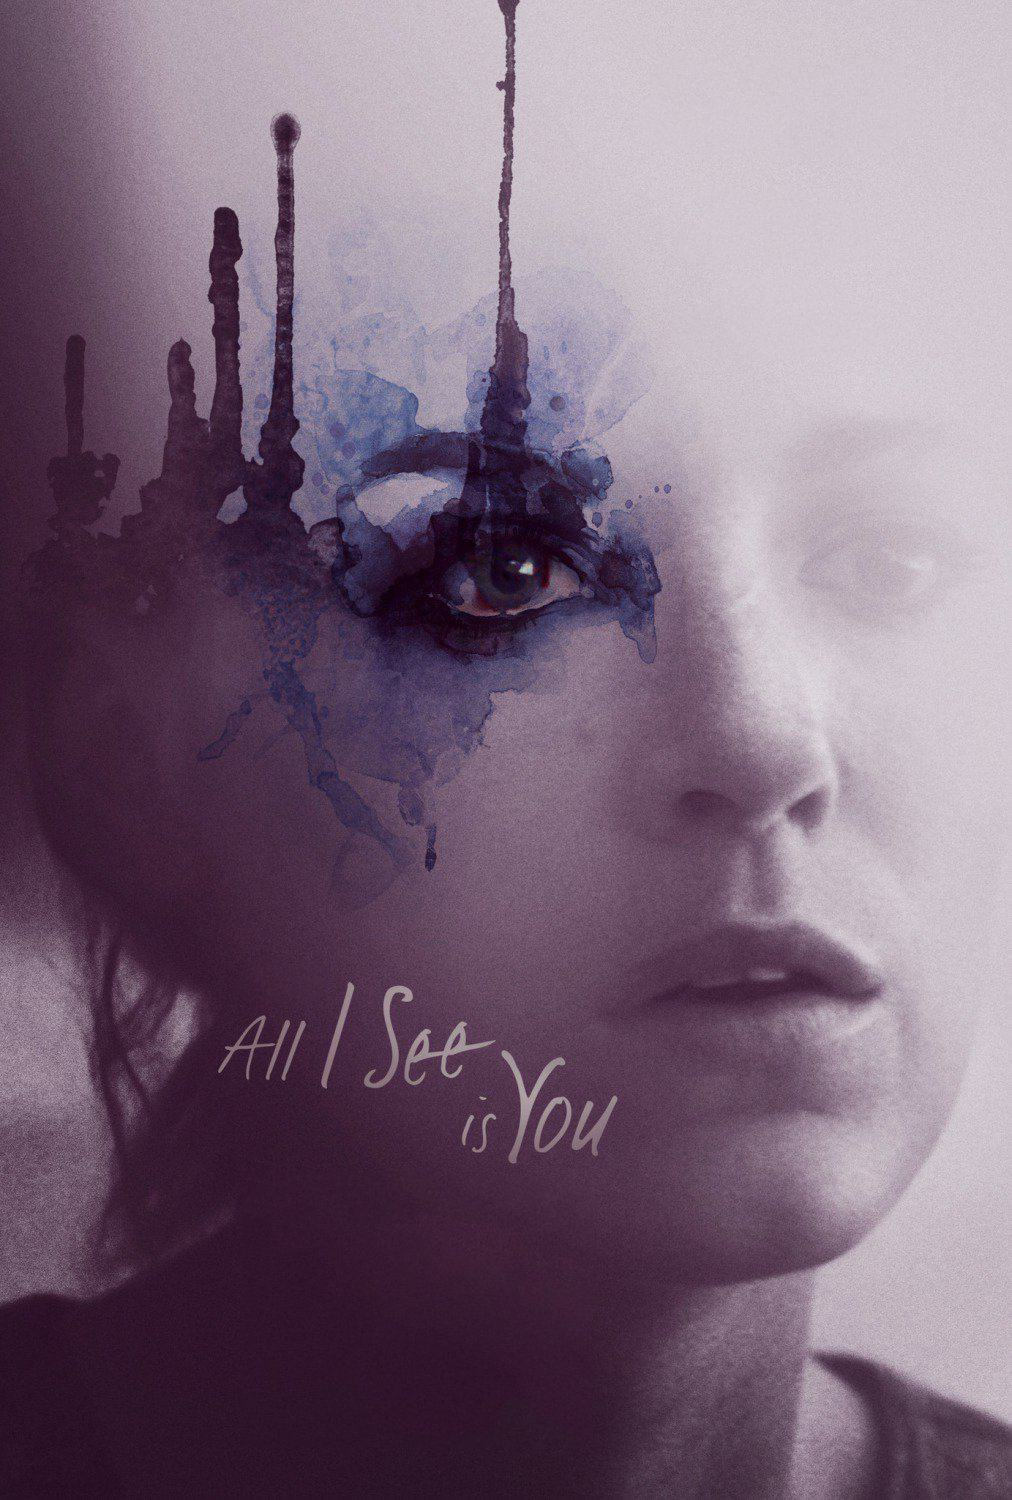 All I See Is You, 2016